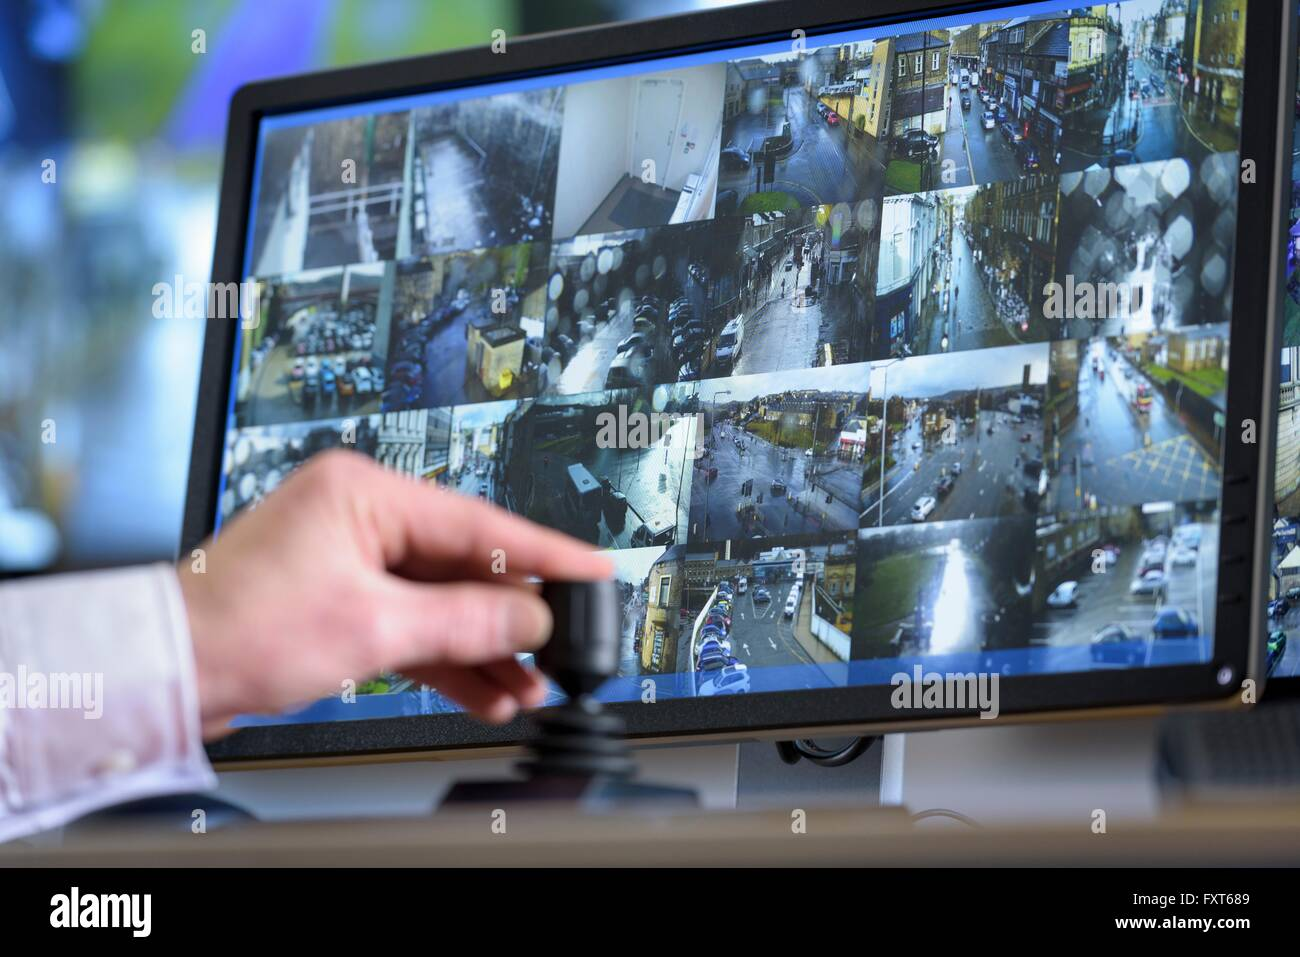 Close up of hand on camera control joystick in control room with video wall - Stock Image